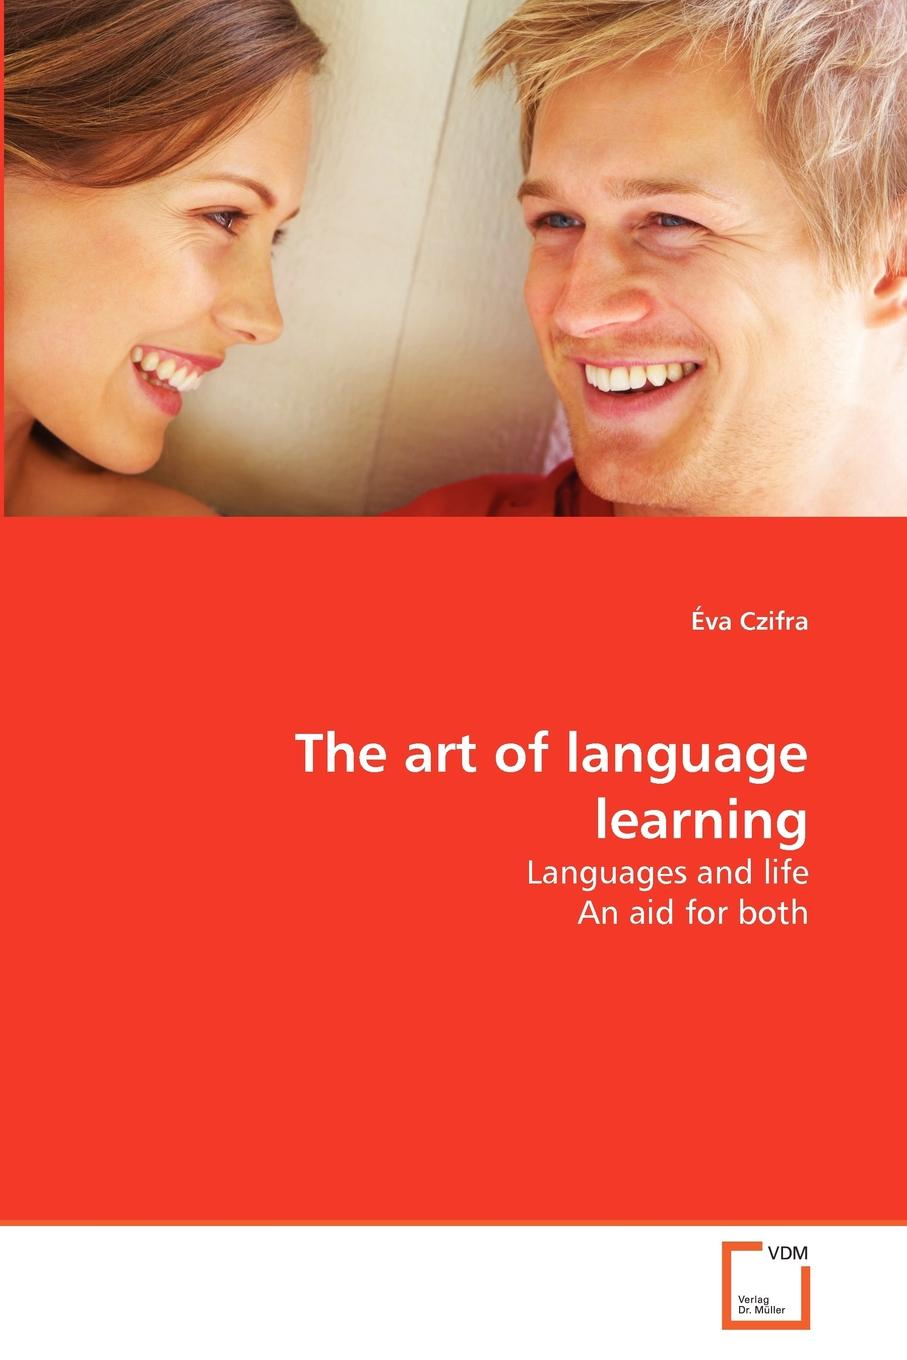 Éva Czifra The art of language learning new deep work book for worker and adult how to effectively use every bit of brain power successful business inspirational book